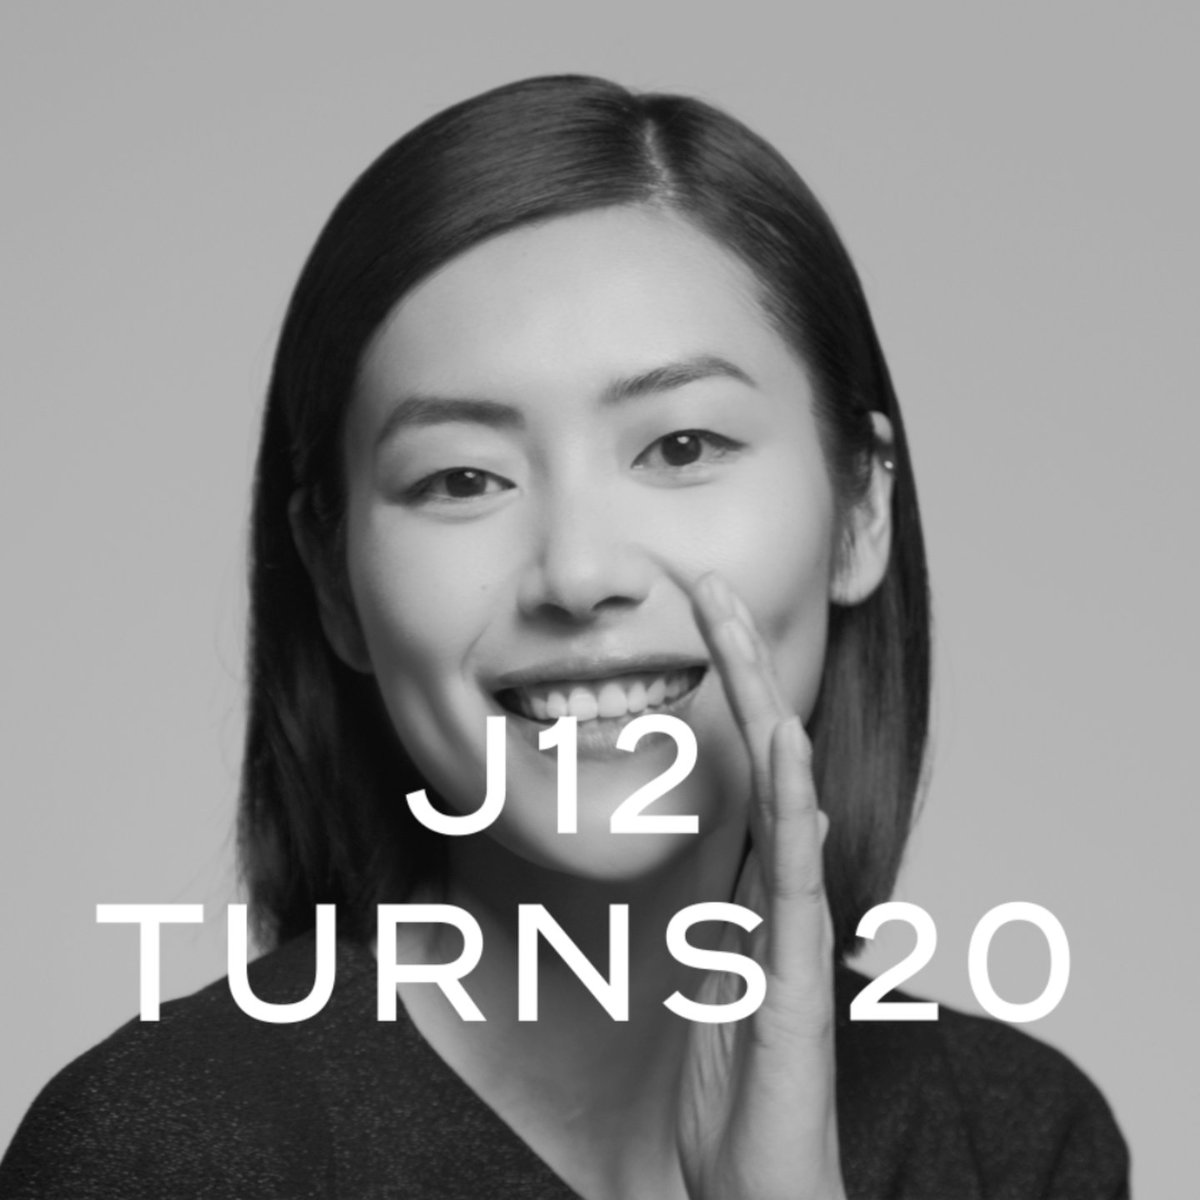 J12 TURNS 20 The J12 muses answer questions in a series of special 20th anniversary interviews. Discover more on https://t.co/OB3OP9C75l  #J12Turns20 #CHANELWatches #ItsAllAboutSeconds https://t.co/RbeadKjo96